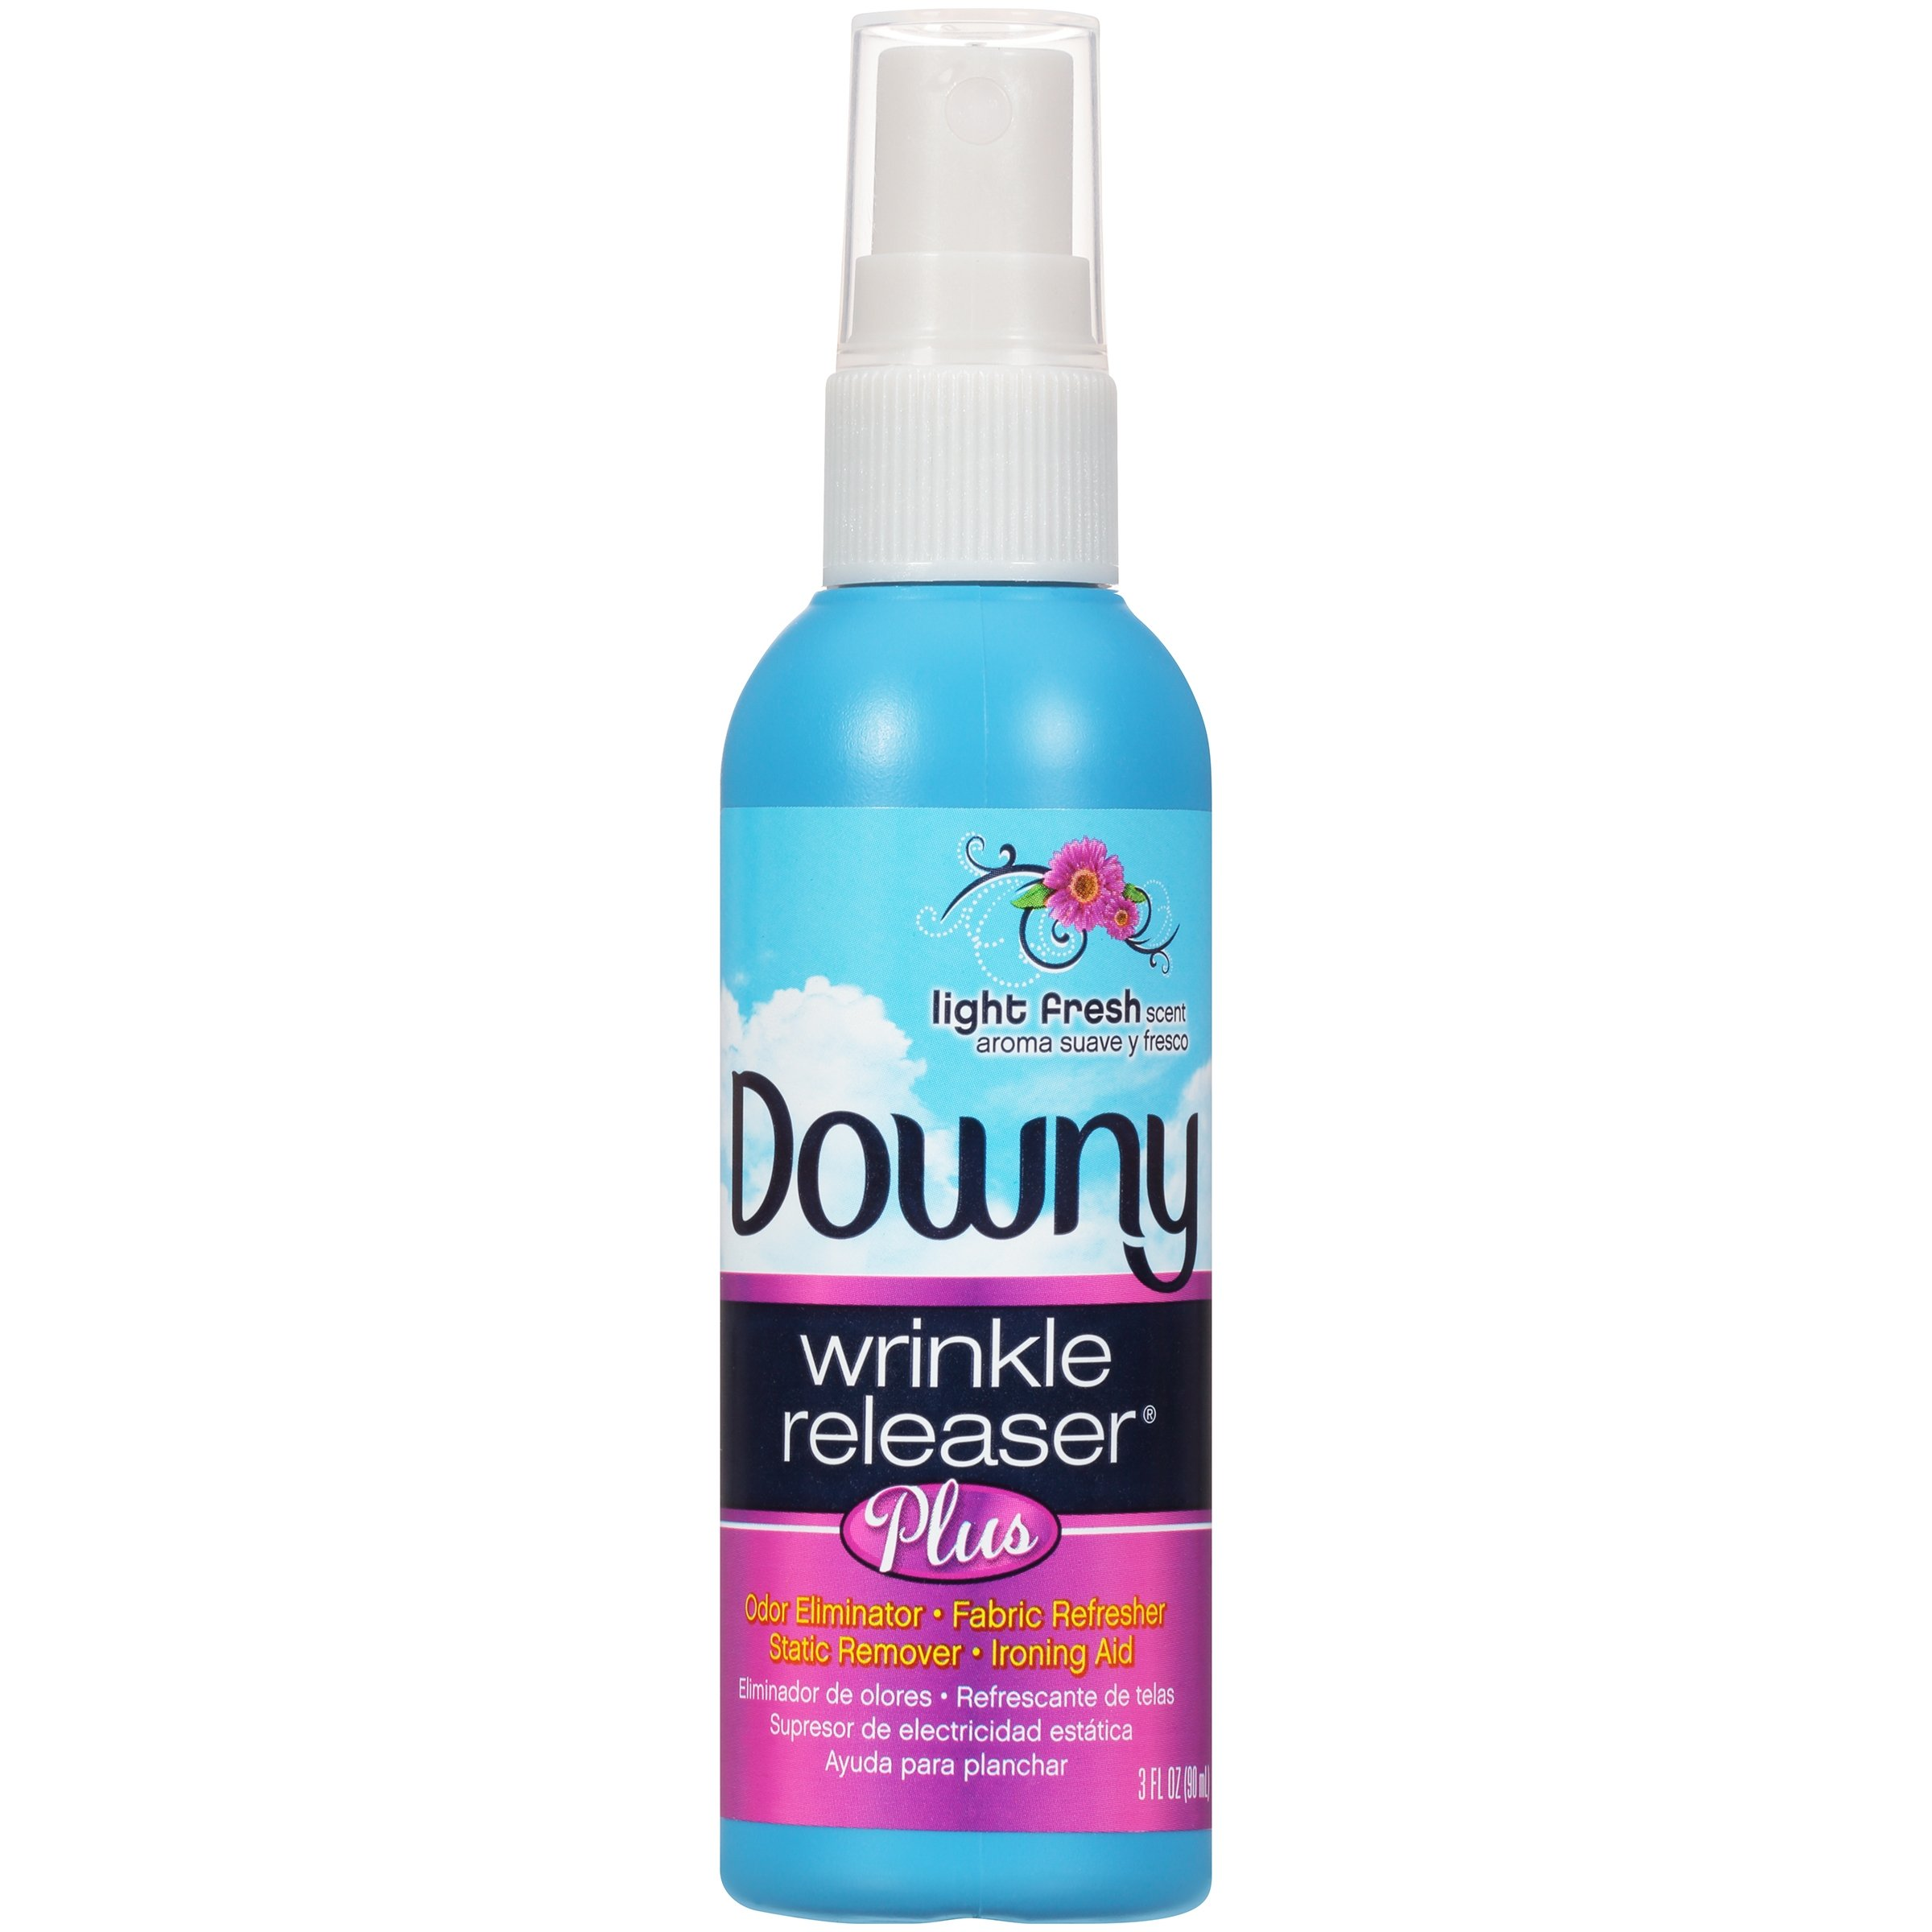 Downy Wrinkle Releaser Plus Light Fresh Scent, Travel Size, 3 Fluid Ounce (Pack of 2) by Downy (Image #5)